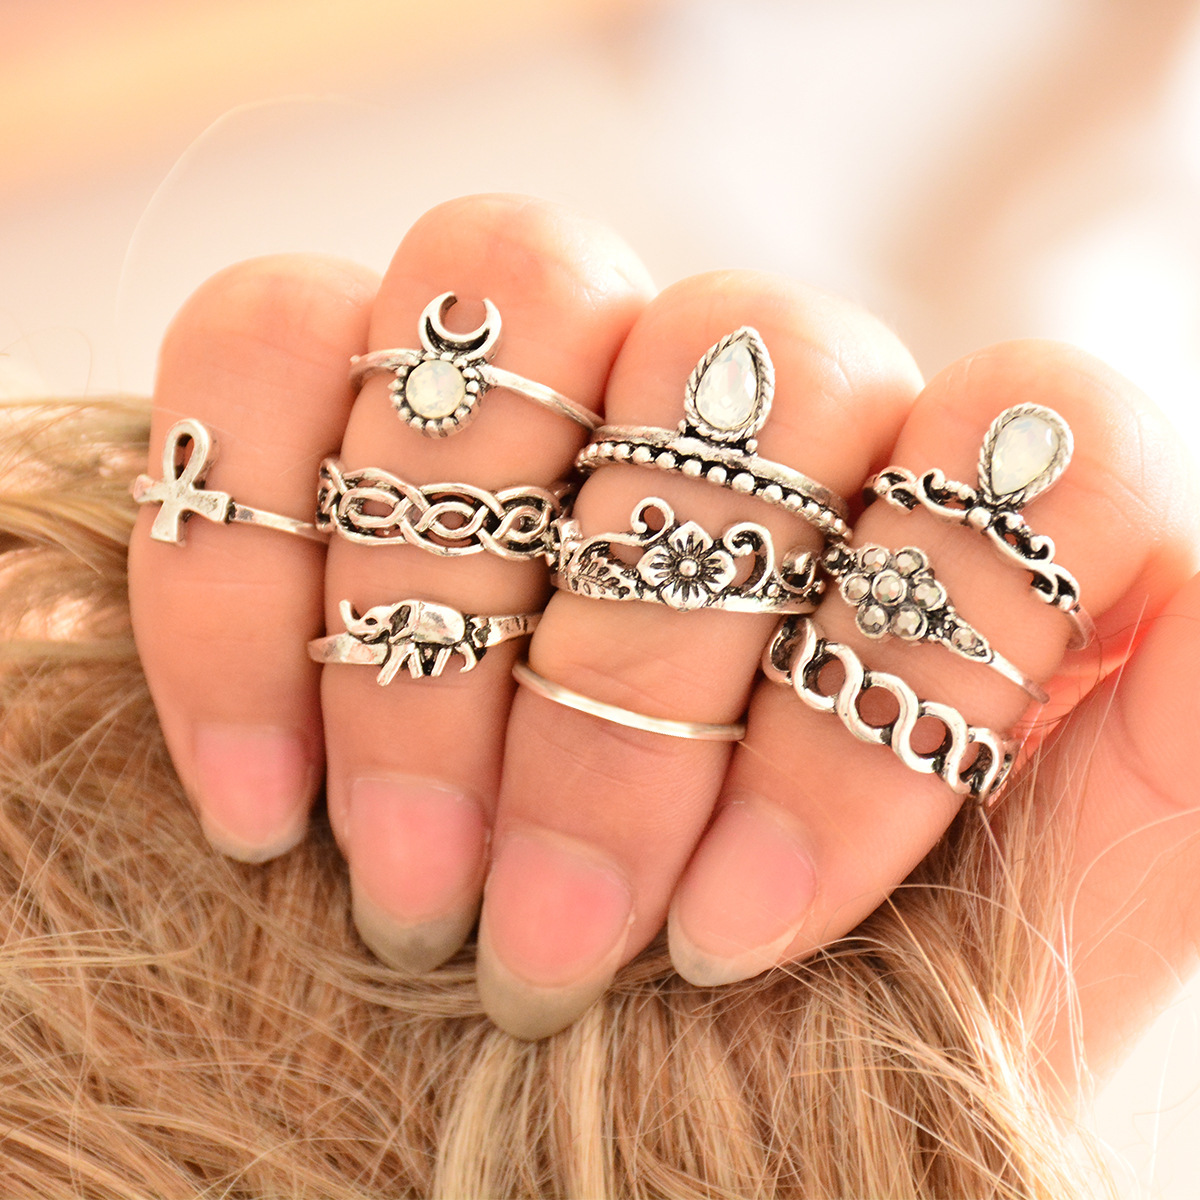 Vintage style fashion rings 5